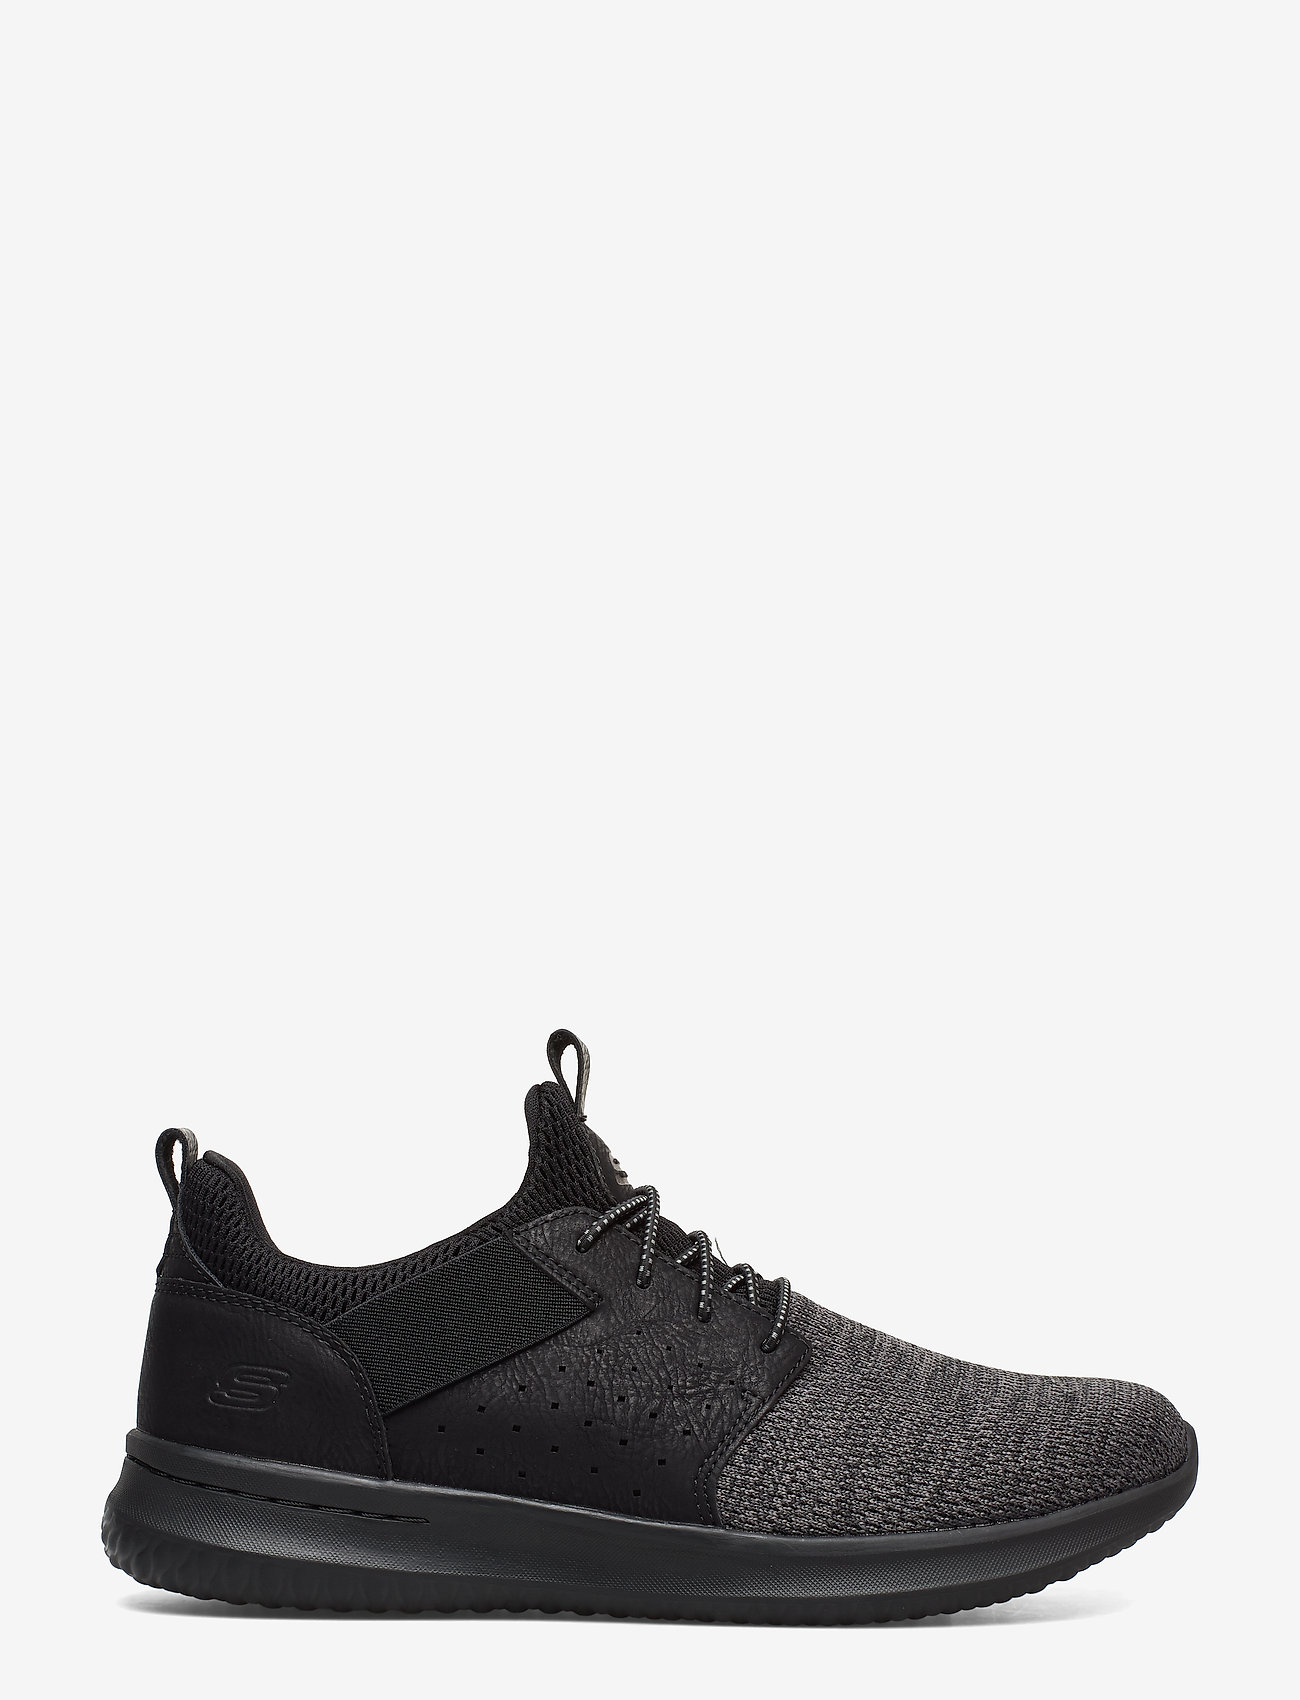 Skechers - Mens Delson - Camben - matalavartiset tennarit - bbk black - 1